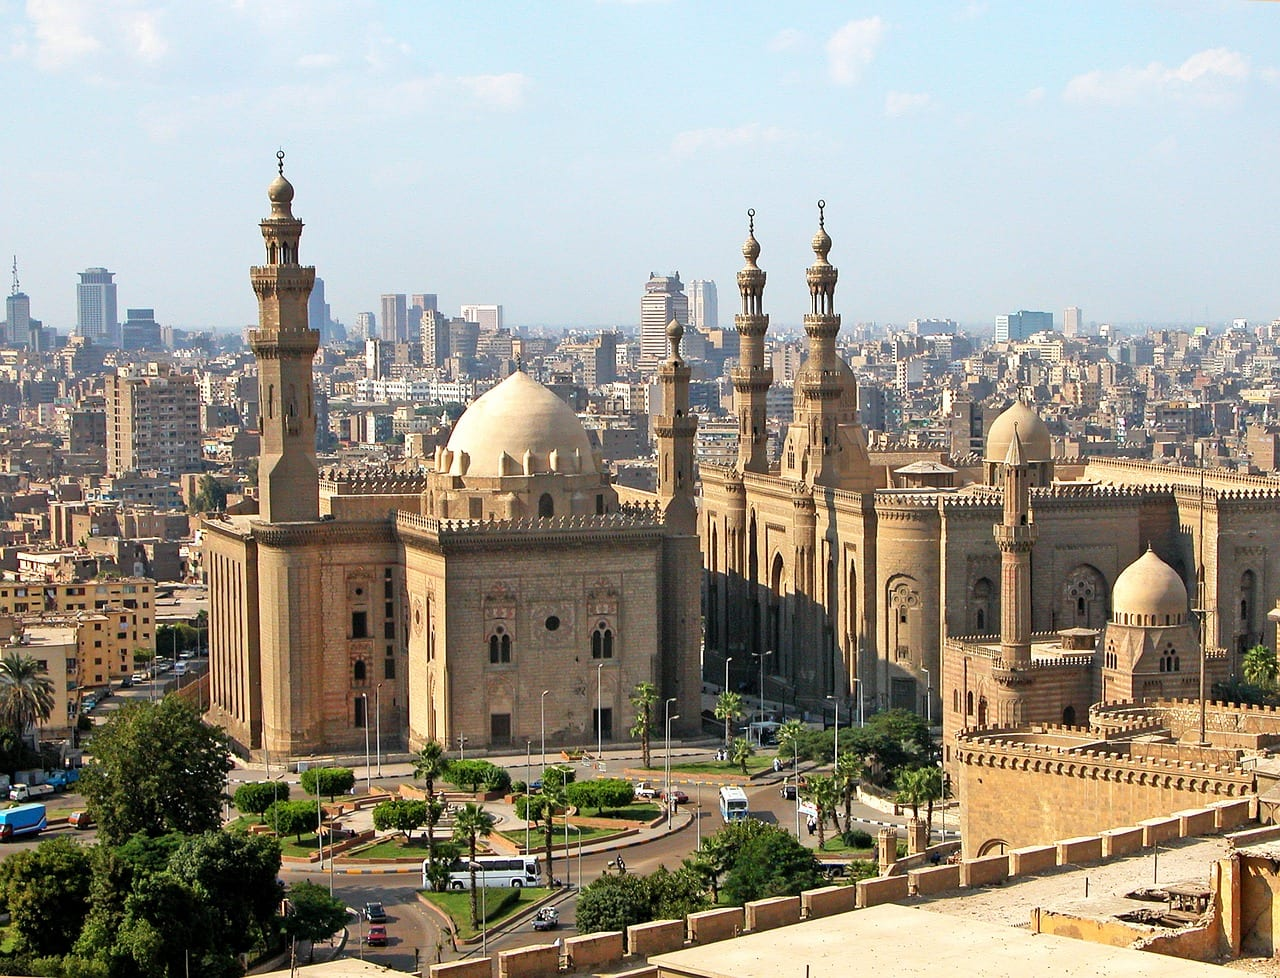 Cairo tours give you the chance to explore some of the urban treasures of Cairo such as Coptic churches, mosques and markets